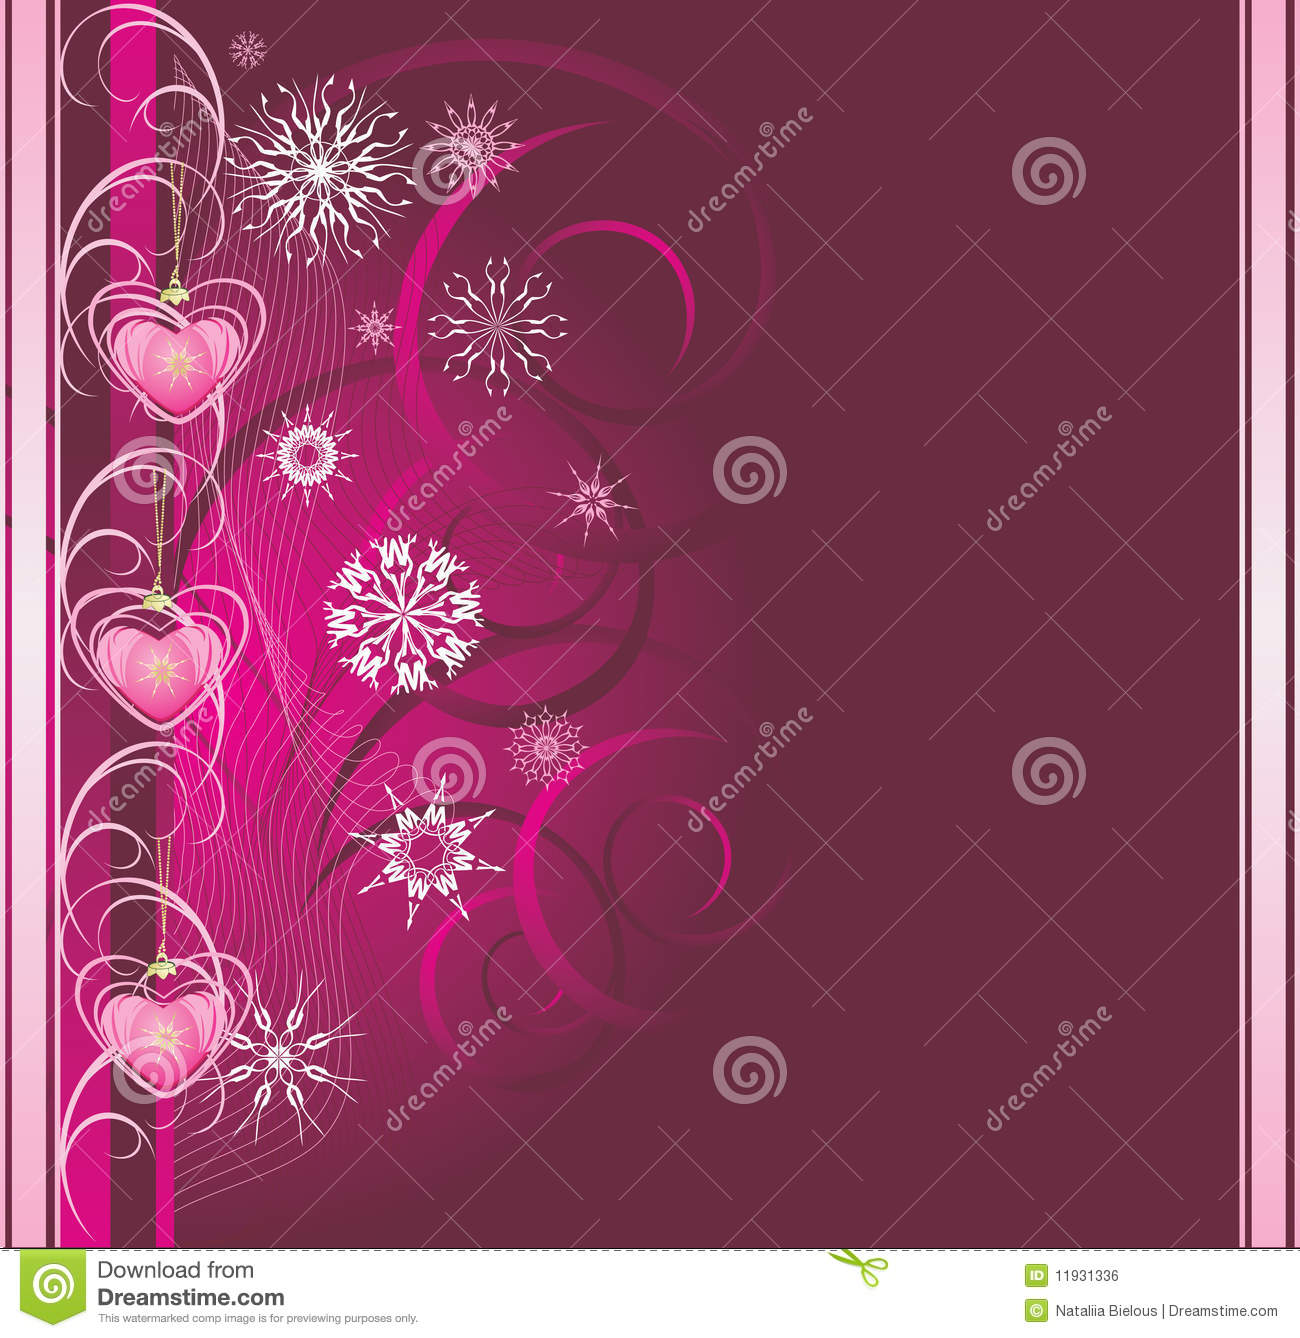 Pink Christmas toys with snowflakes. Banner